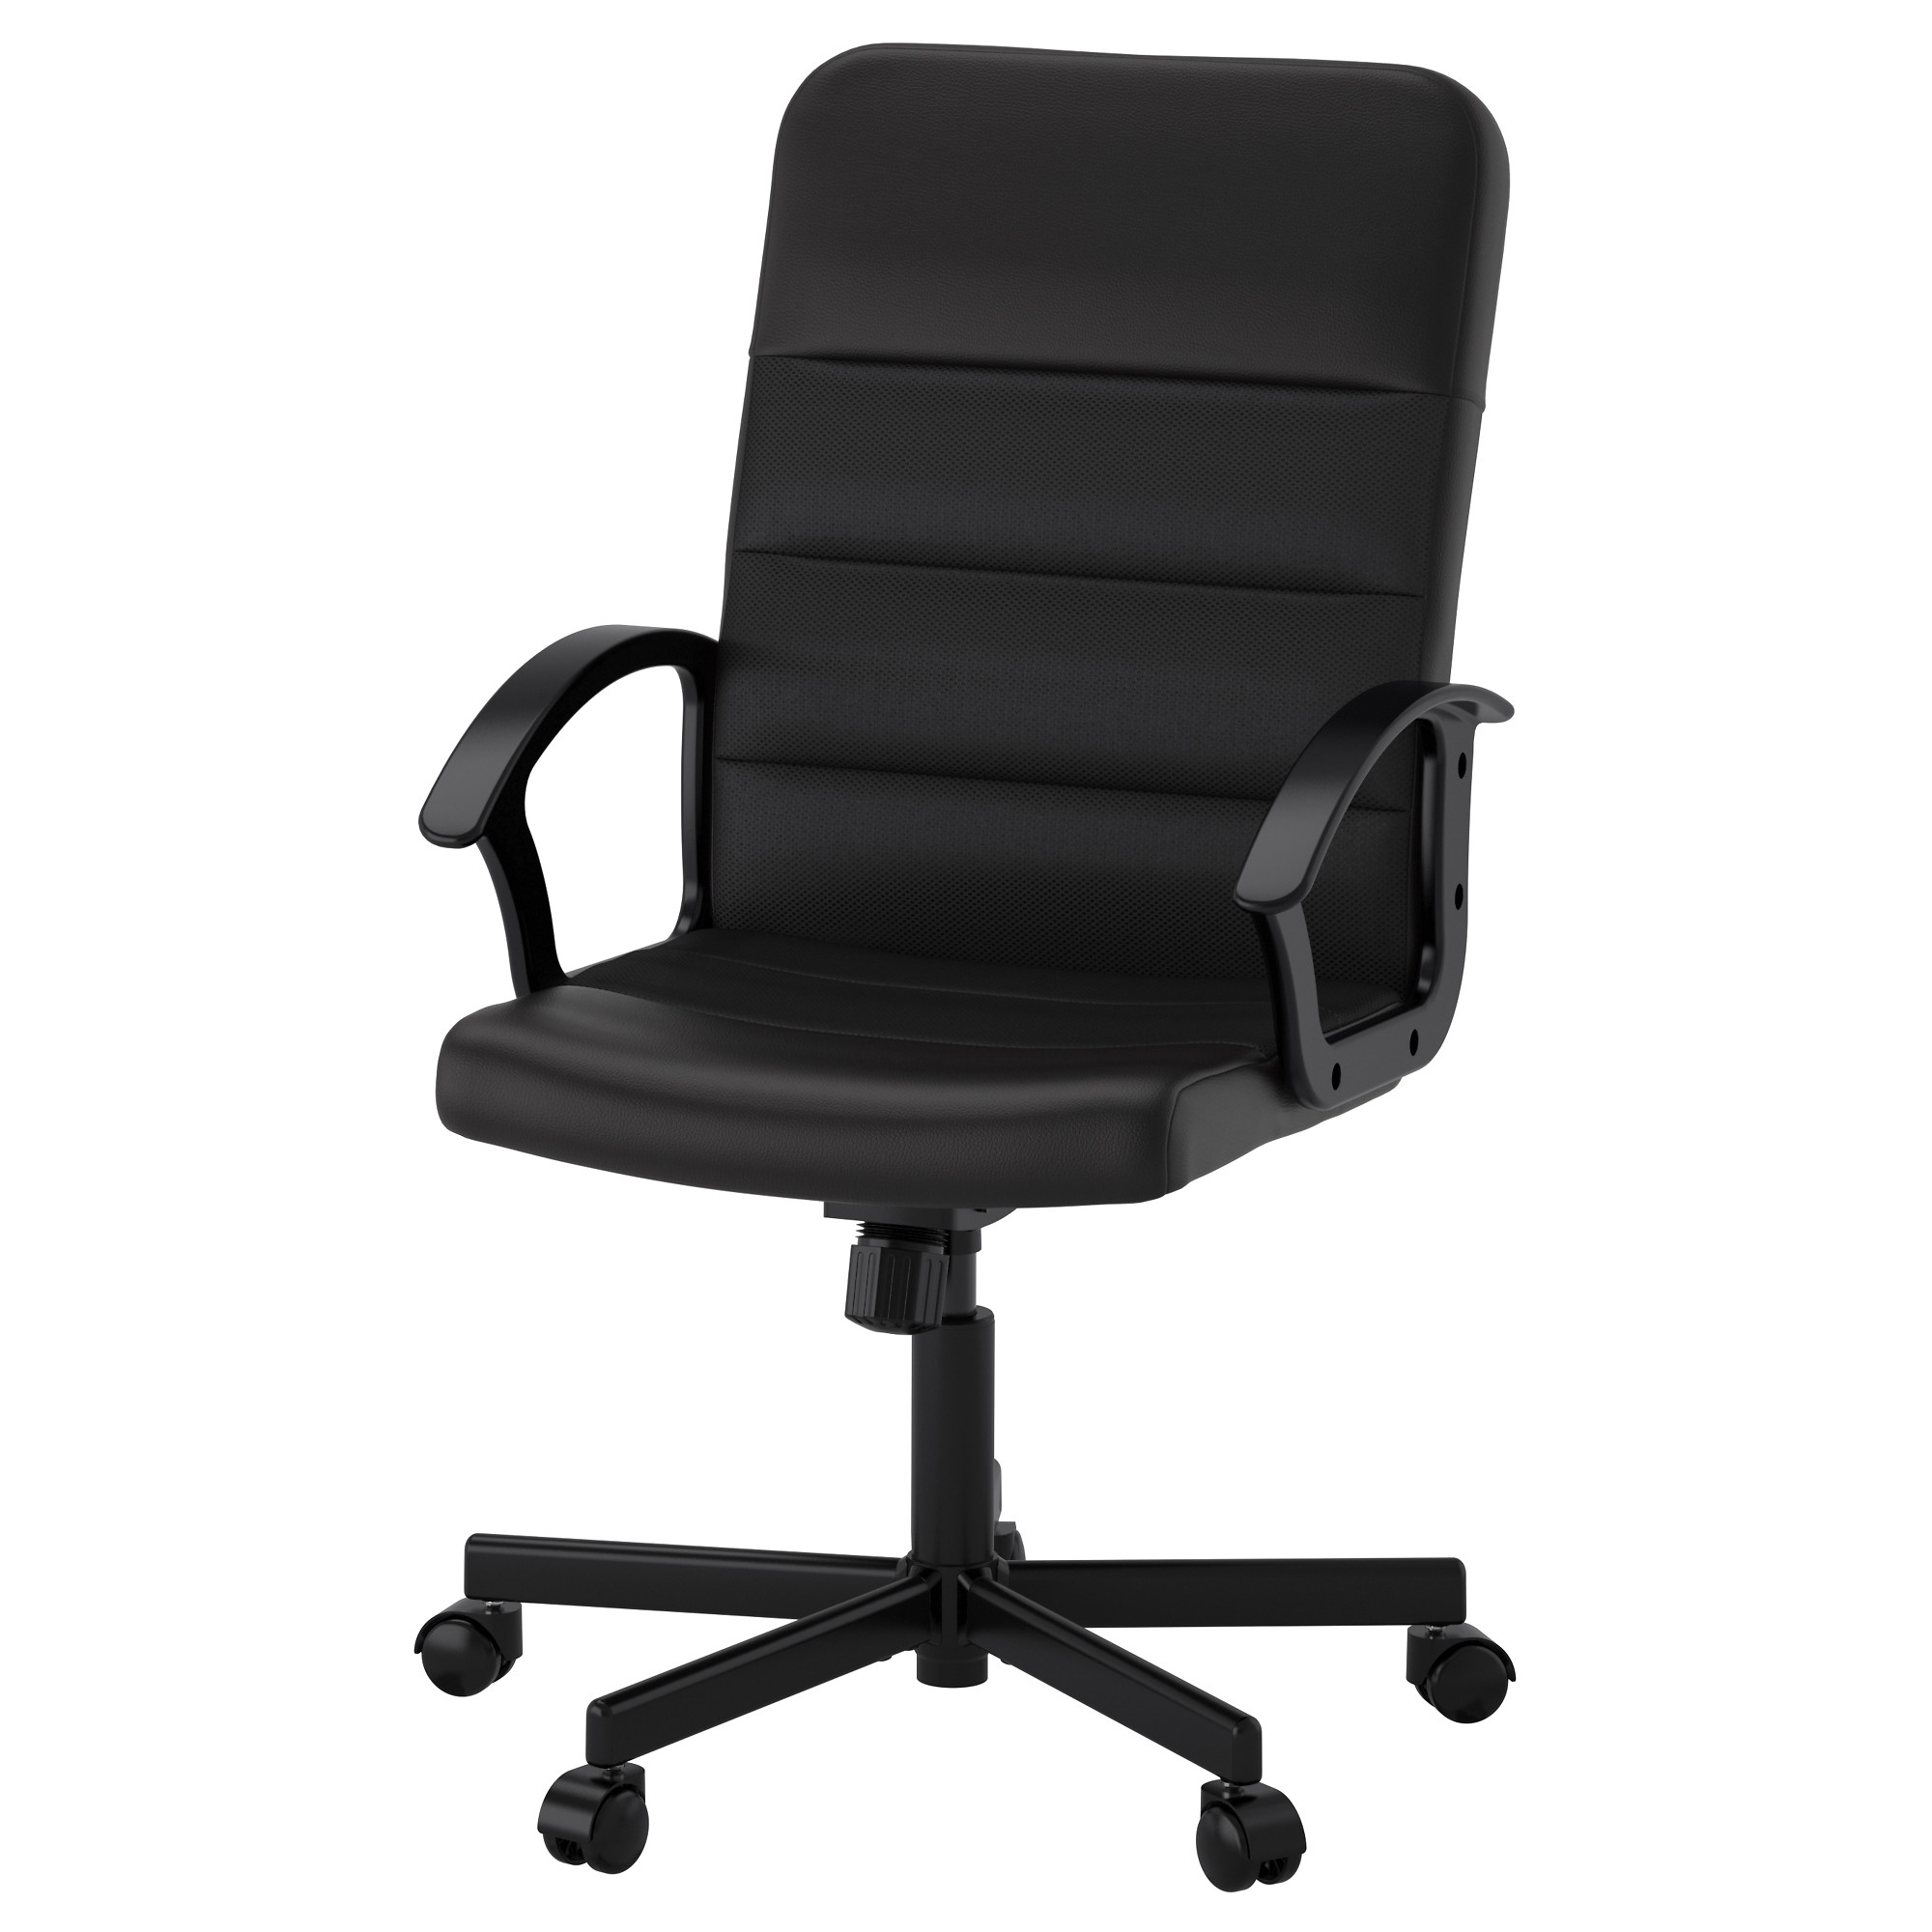 Black and white office chair - Inter Ikea Systems B V 1999 2016 Privacy Policy